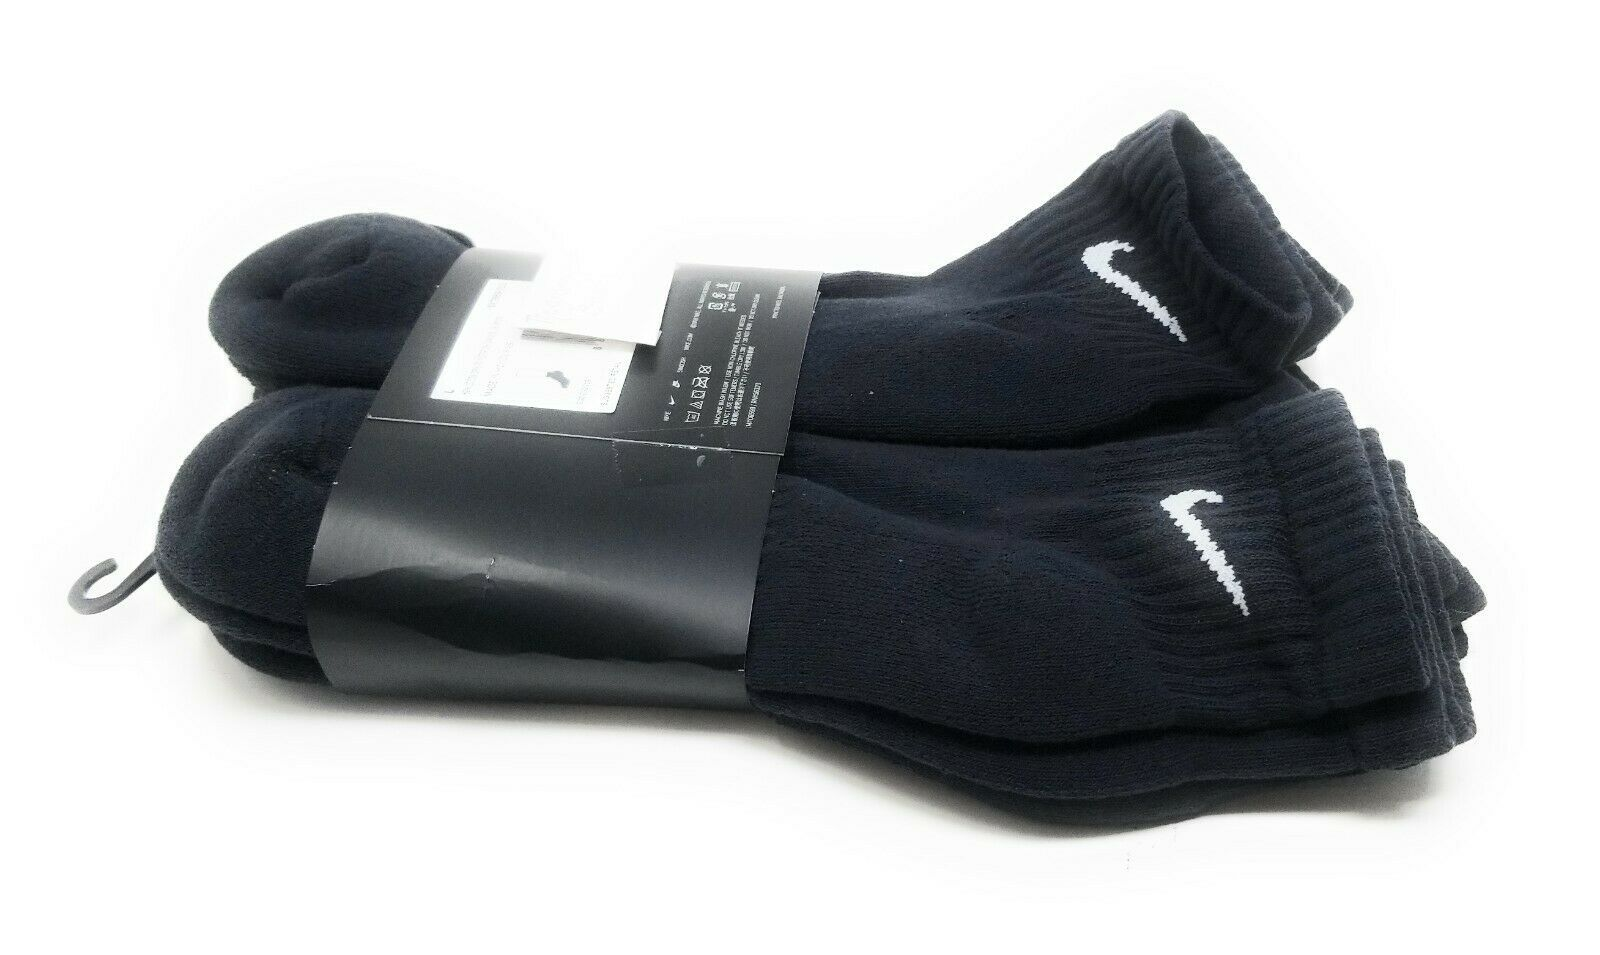 Mens Ankle Nike Socks L Black Women Quarter 6 Pairs Cotton Cushion Training image 7